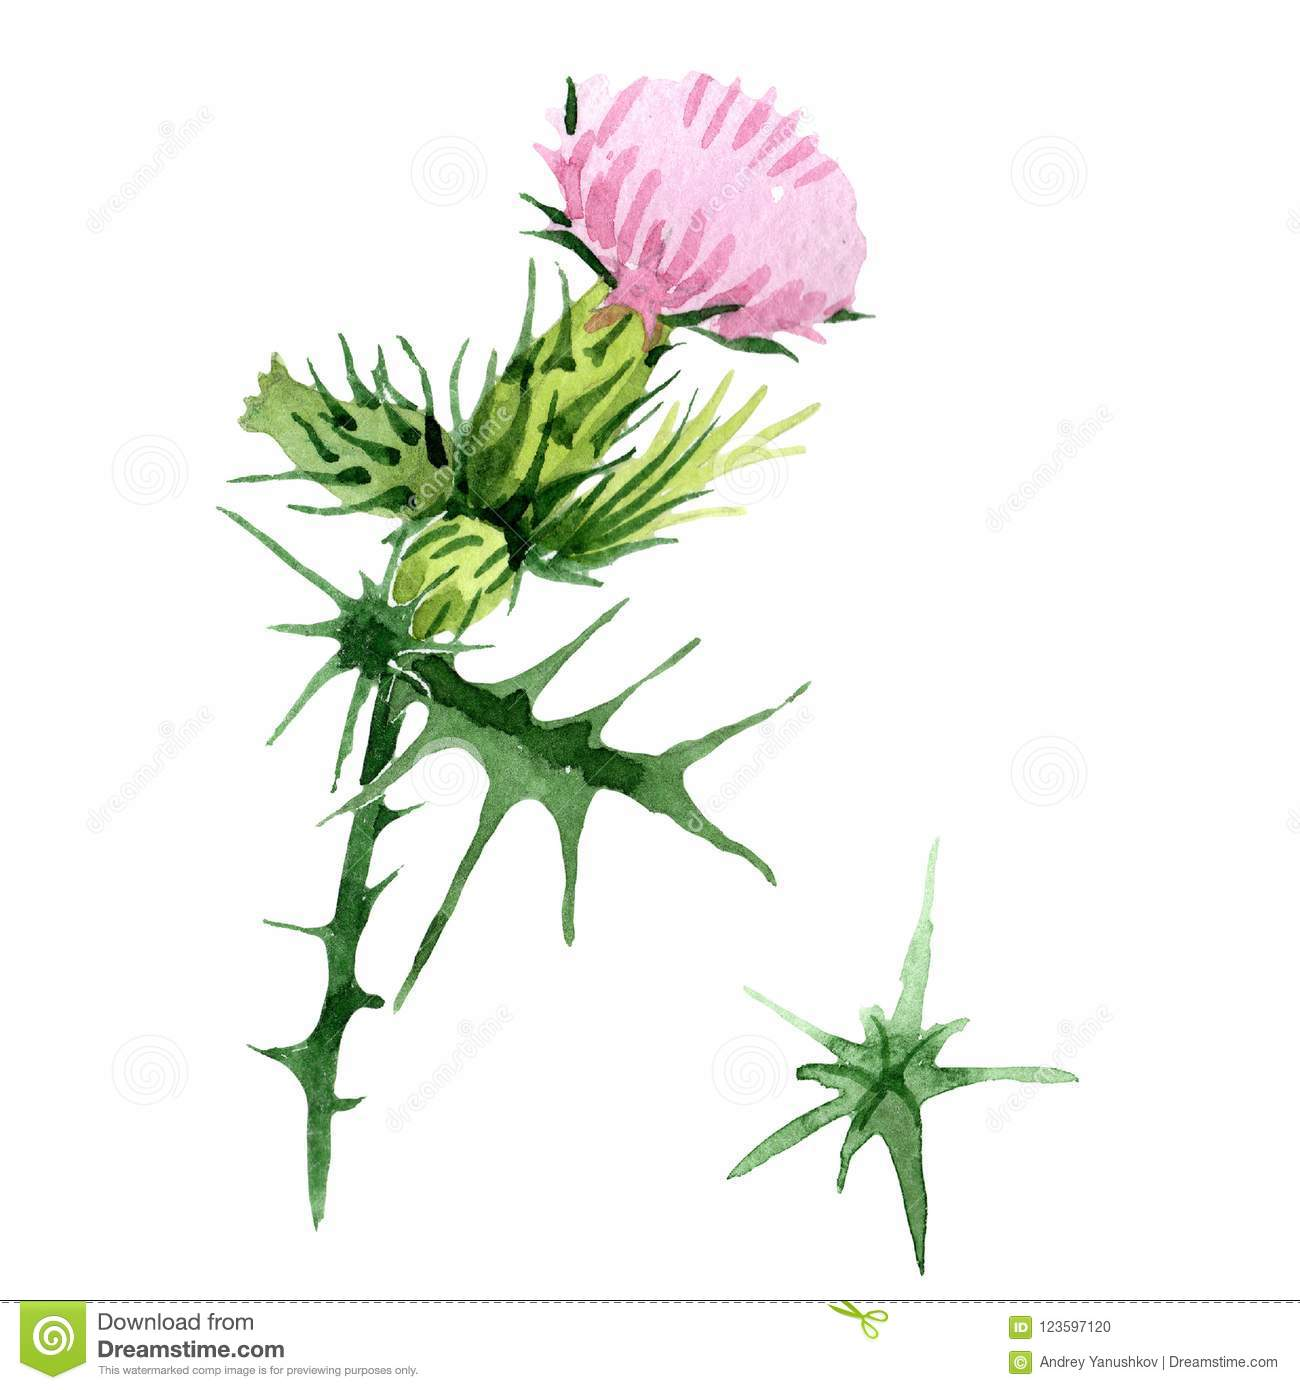 f1fb9d732 Watercolor pink and purple thistle wildflower. Floral botanical flower. Isolated  illustration element.